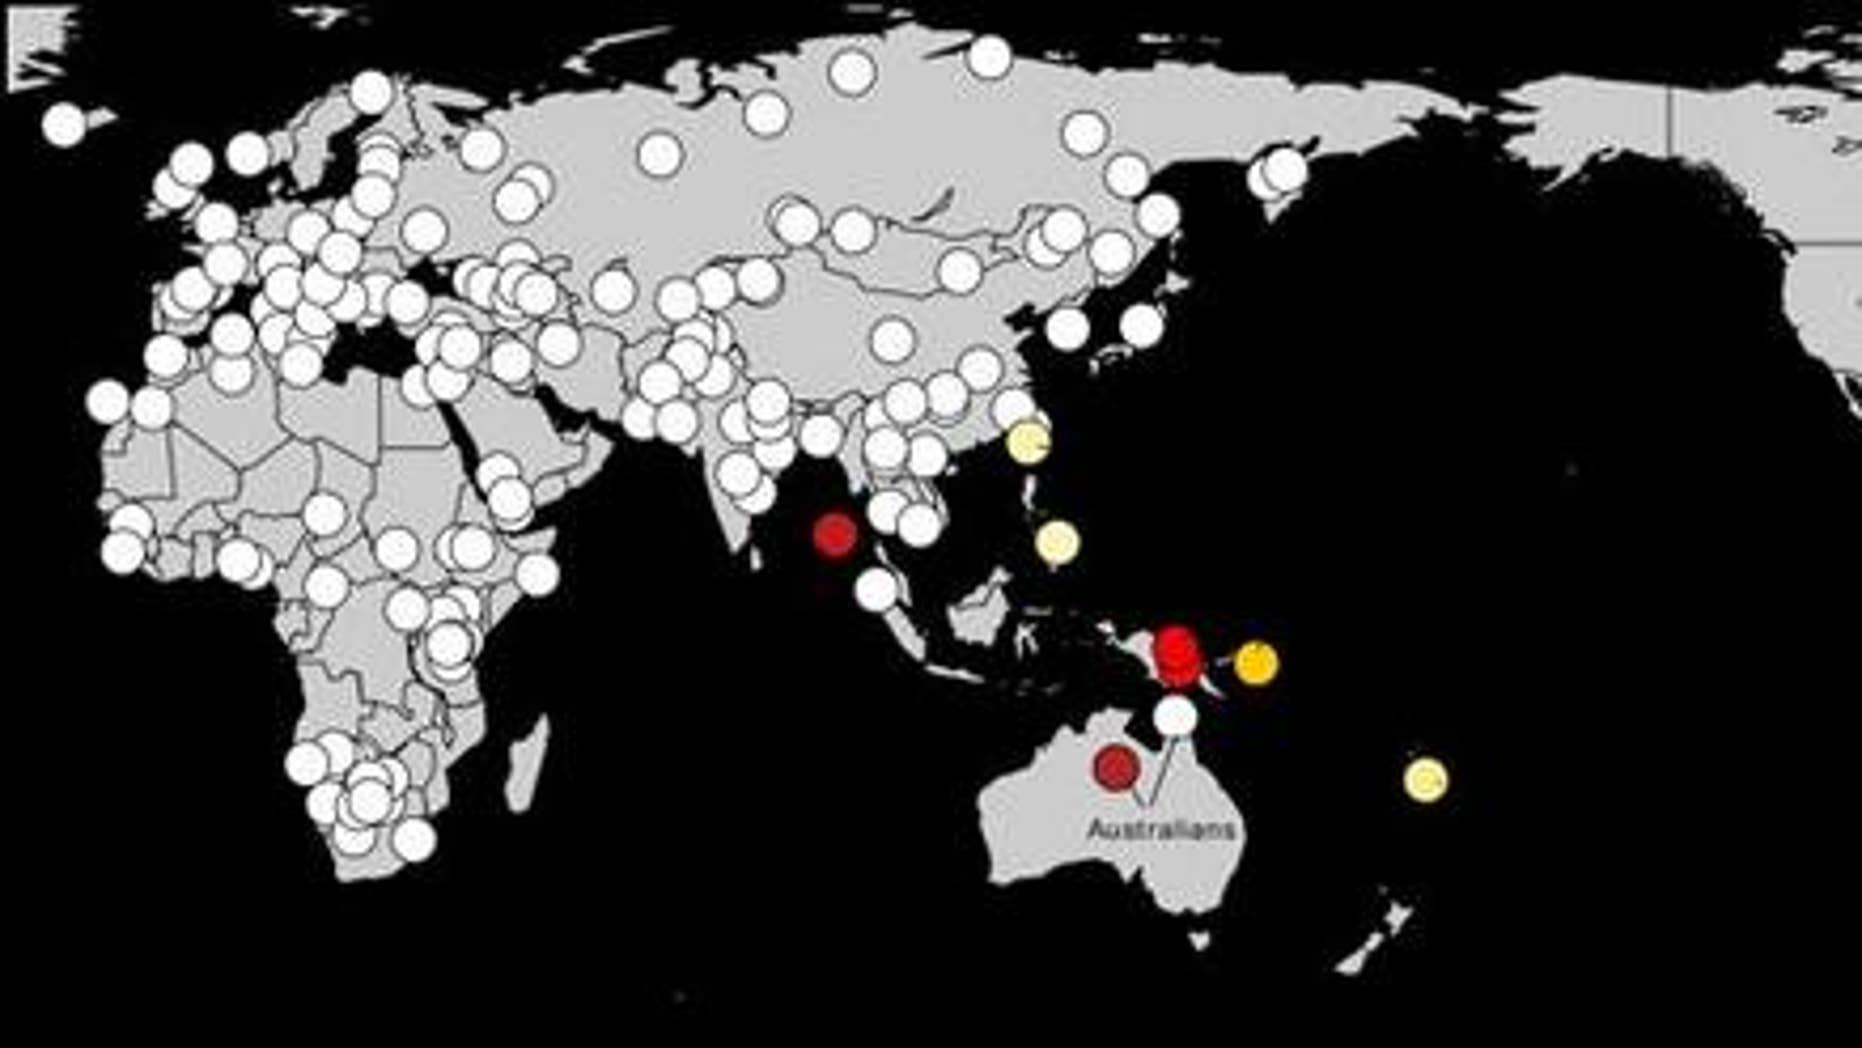 Scientists have found deep genetic links between Amazonian natives in South America and Australasians (warmer colors indicate the strongest affinities).